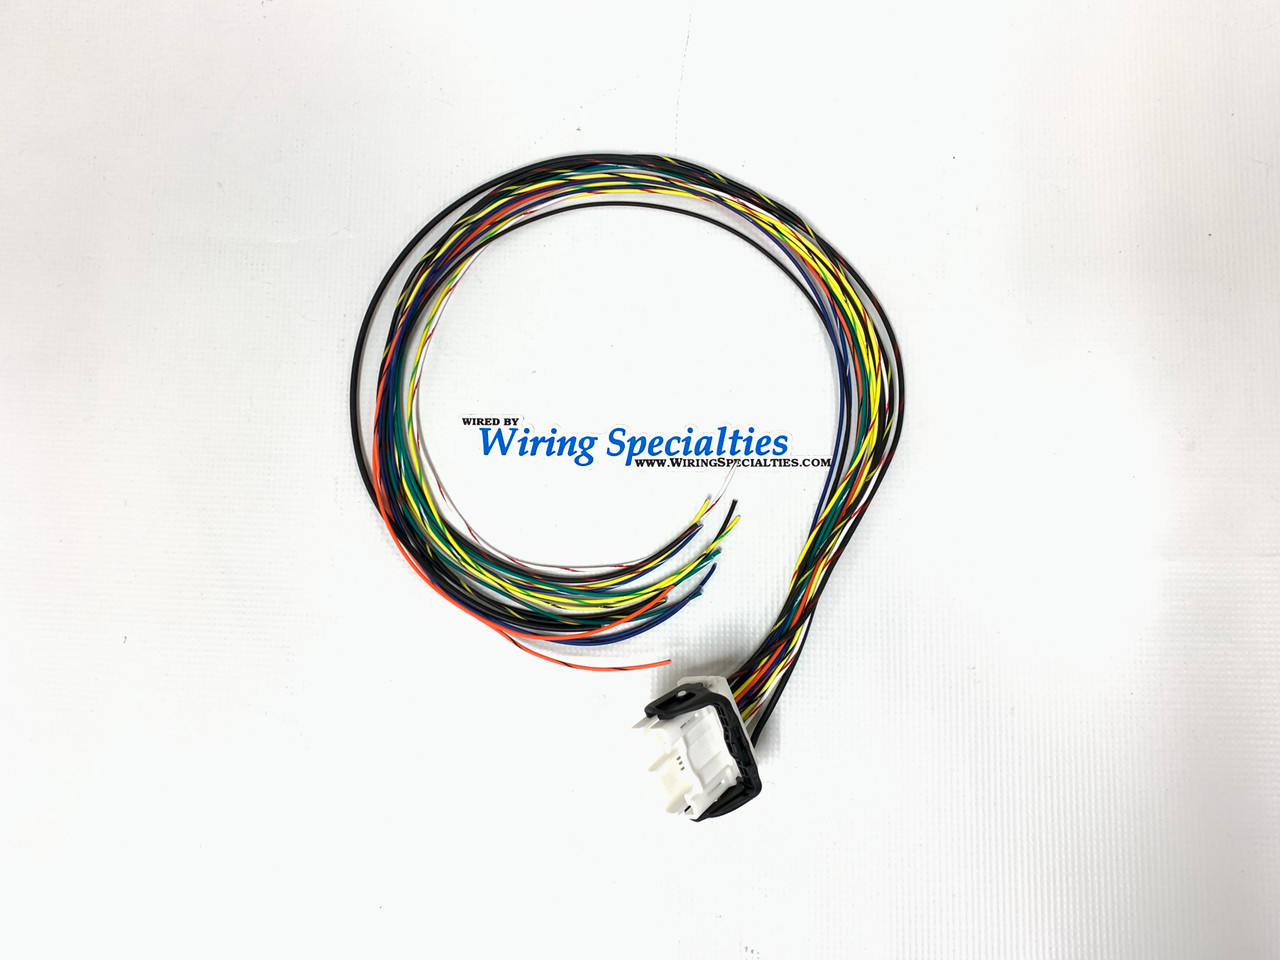 Universal PRO Interface for Switch Panel use - Flying Leads ONLY - Wiring  SpecialtiesWiring Specialties